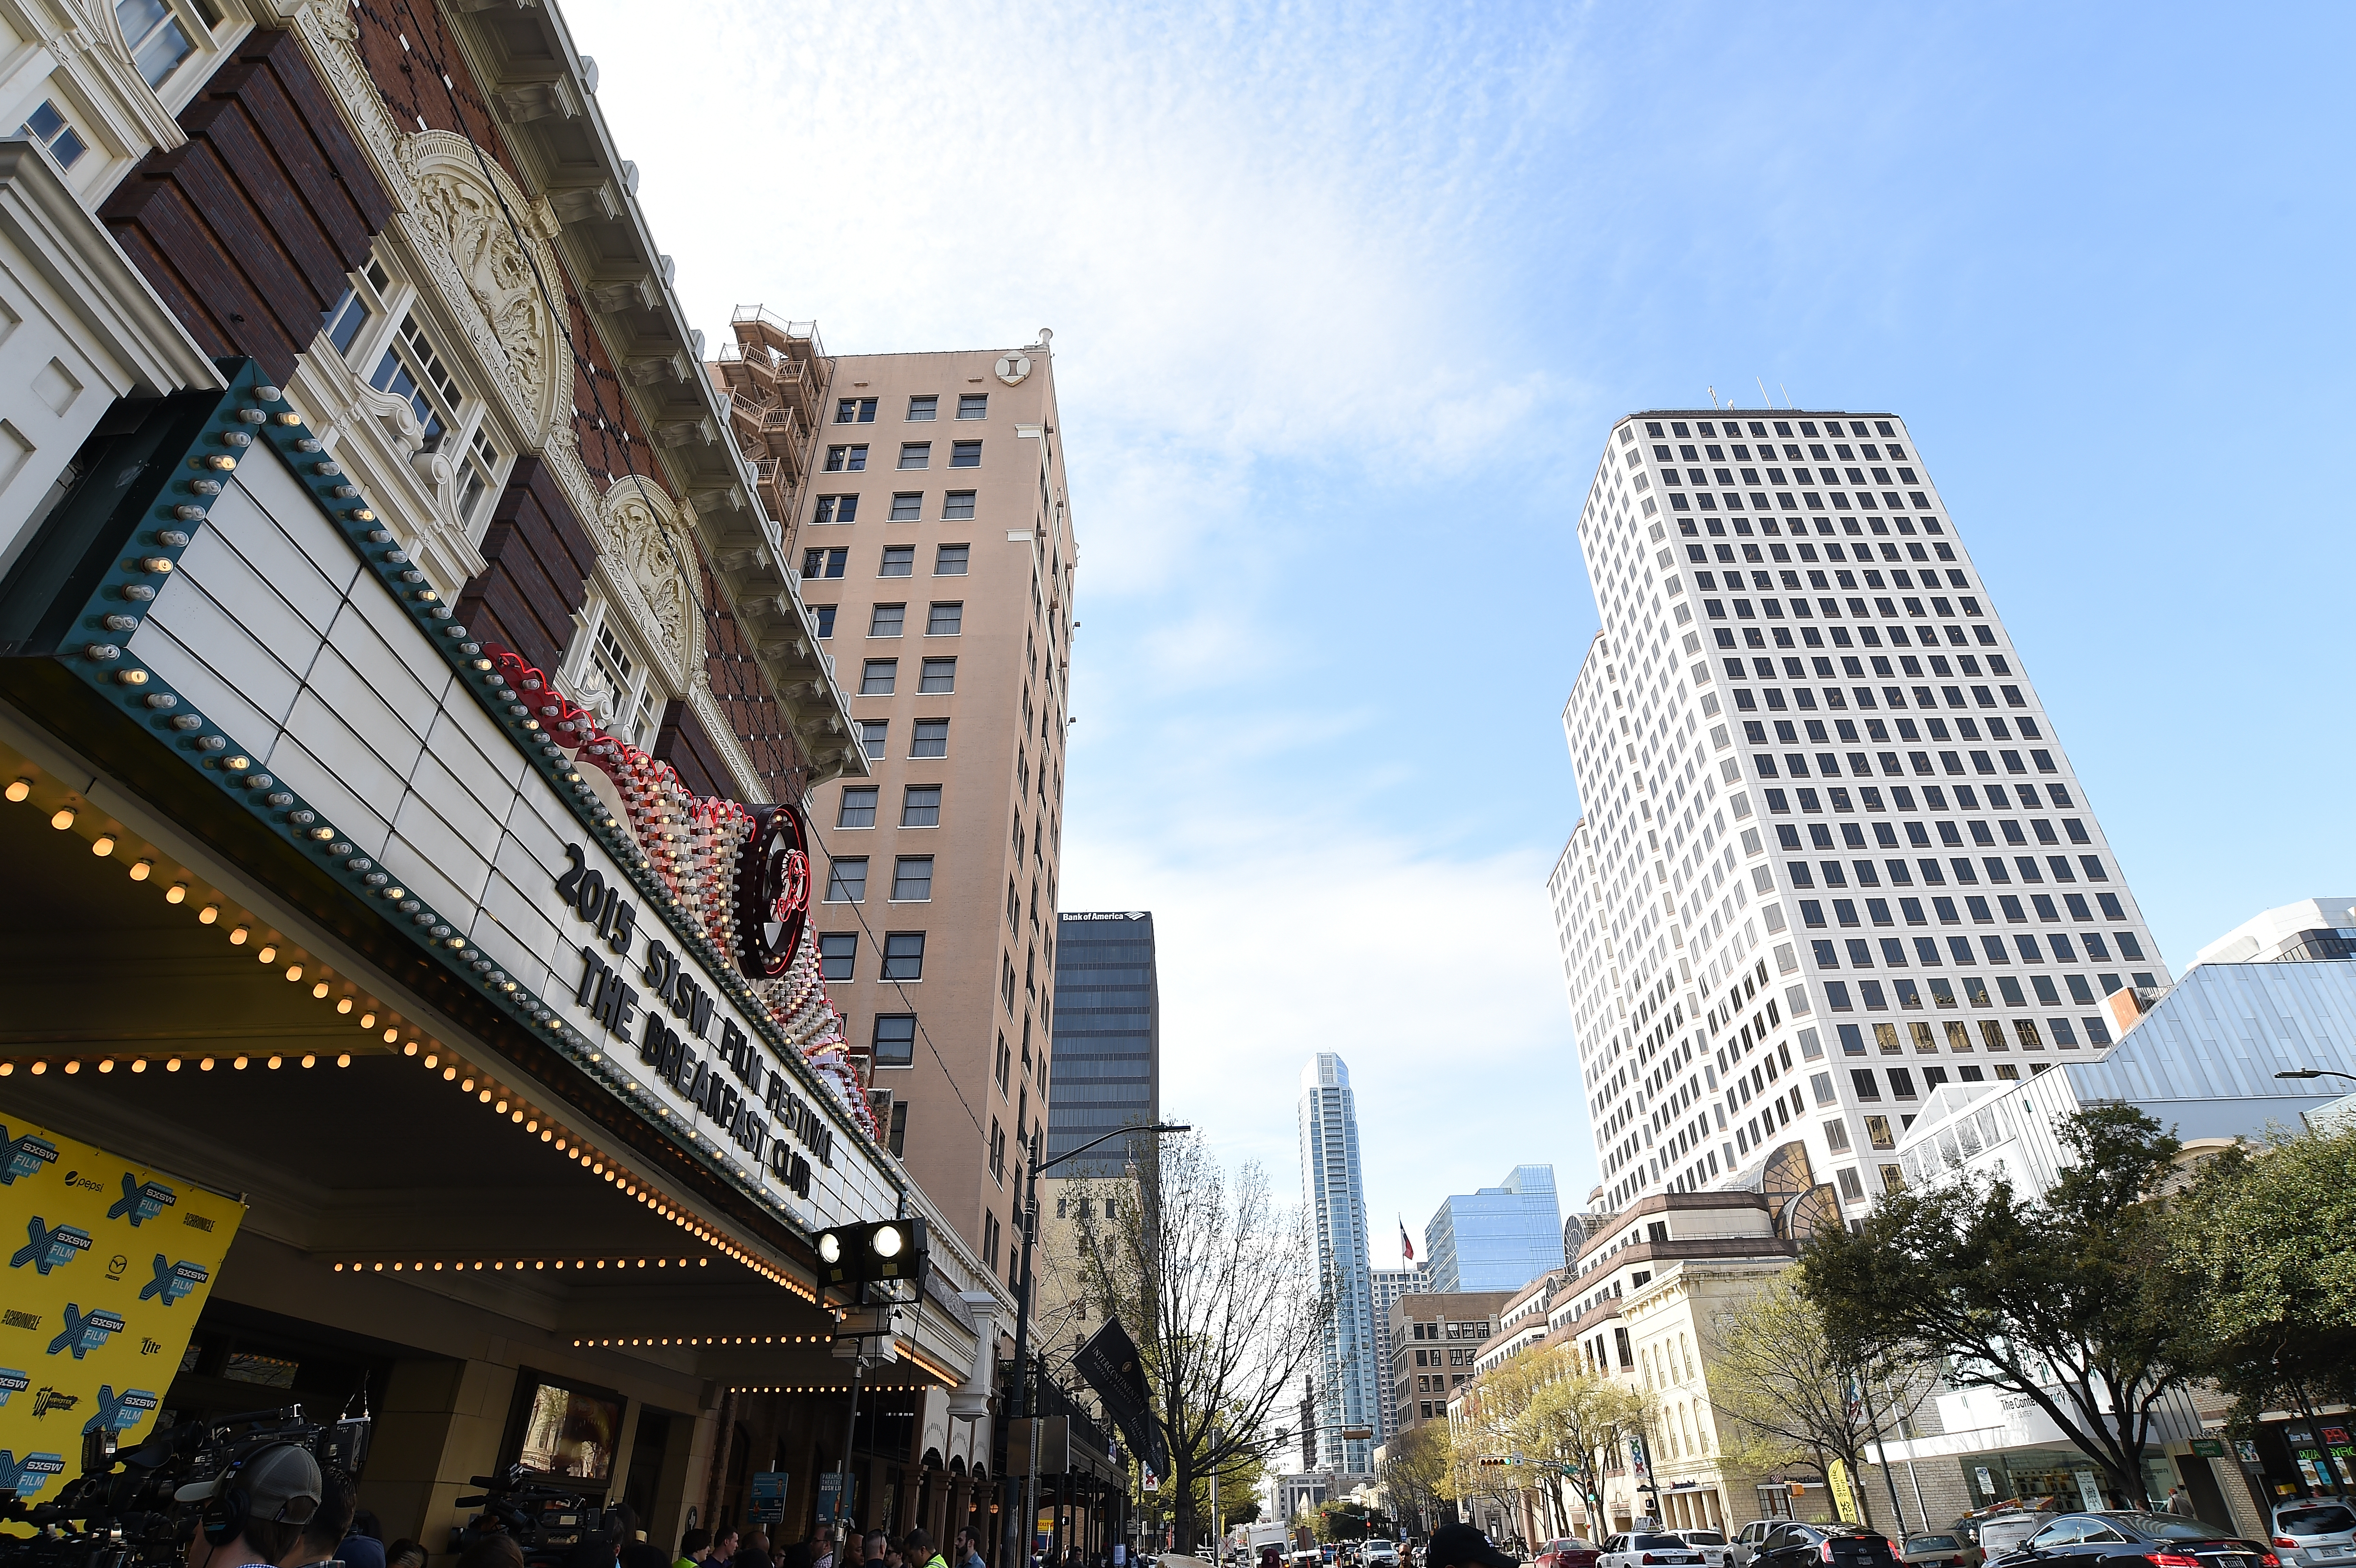 6 things drone enthusiasts should look out for at SXSW (including Amazon drones!)